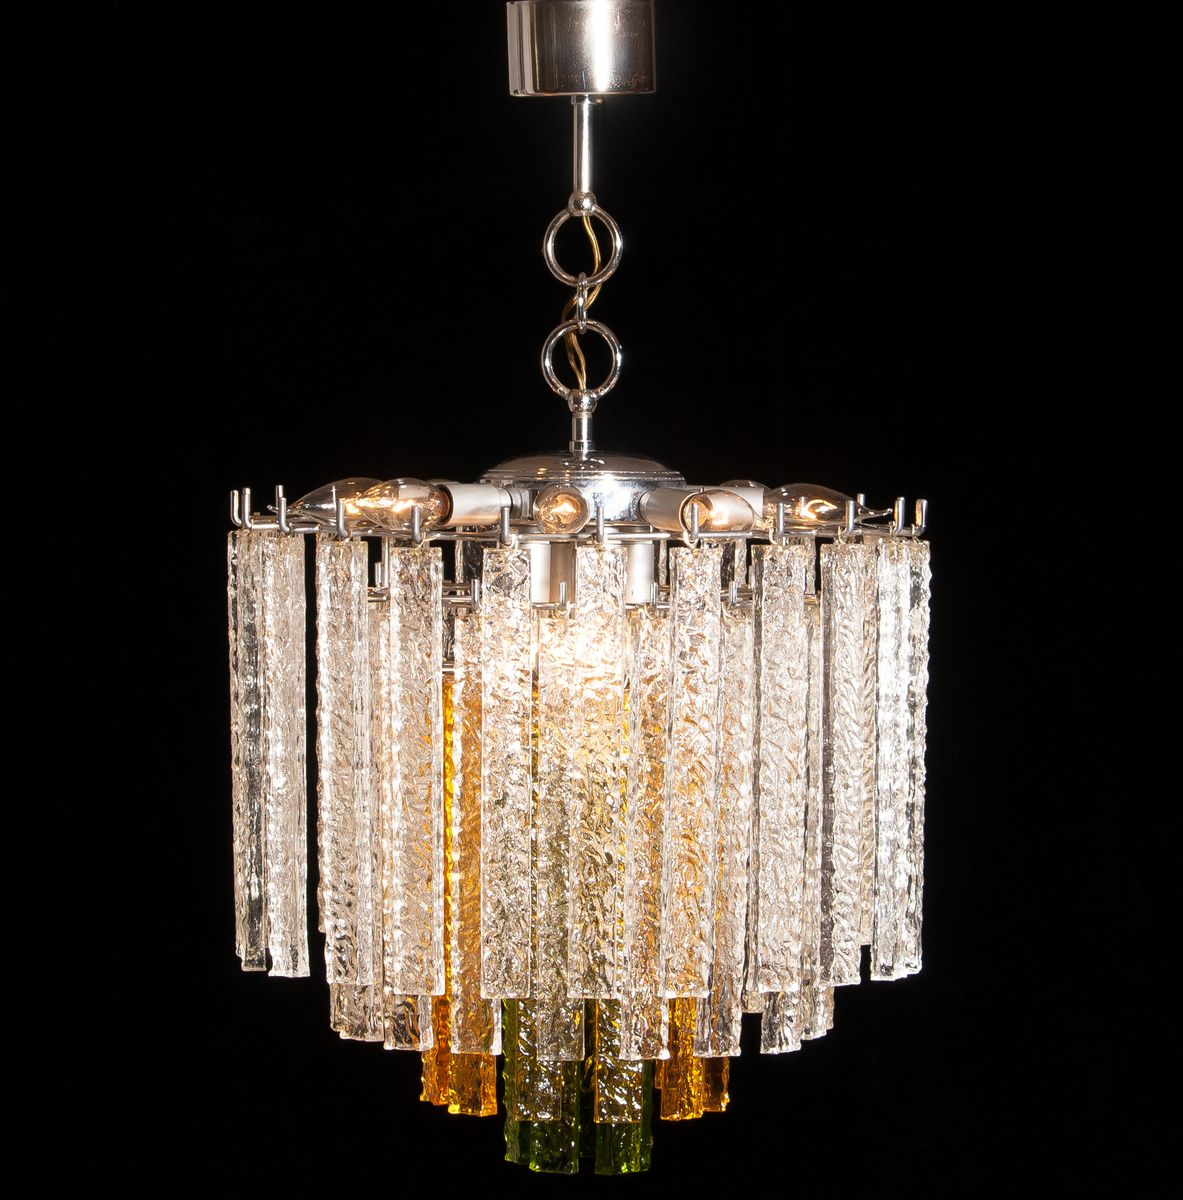 Murano tri color glass chandelier from venini 1960s for sale at murano tri color glass chandelier from venini 1960s mozeypictures Images